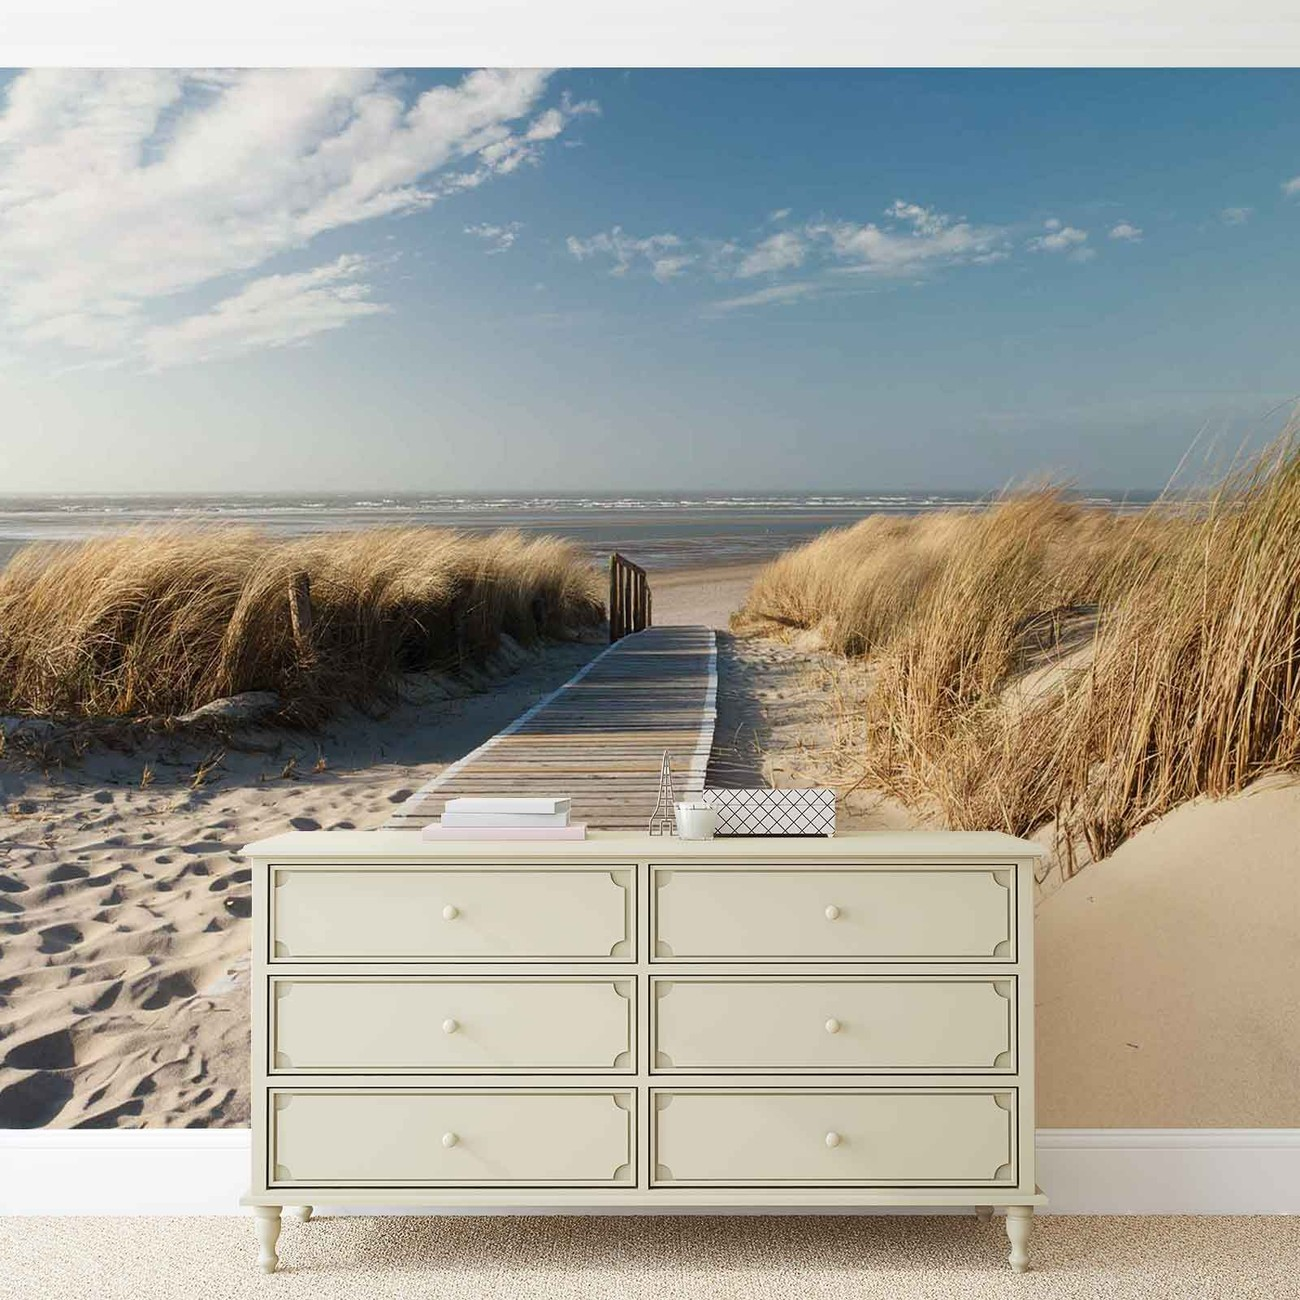 fototapete tapete weg strand natur bei europosters kostenloser versand. Black Bedroom Furniture Sets. Home Design Ideas